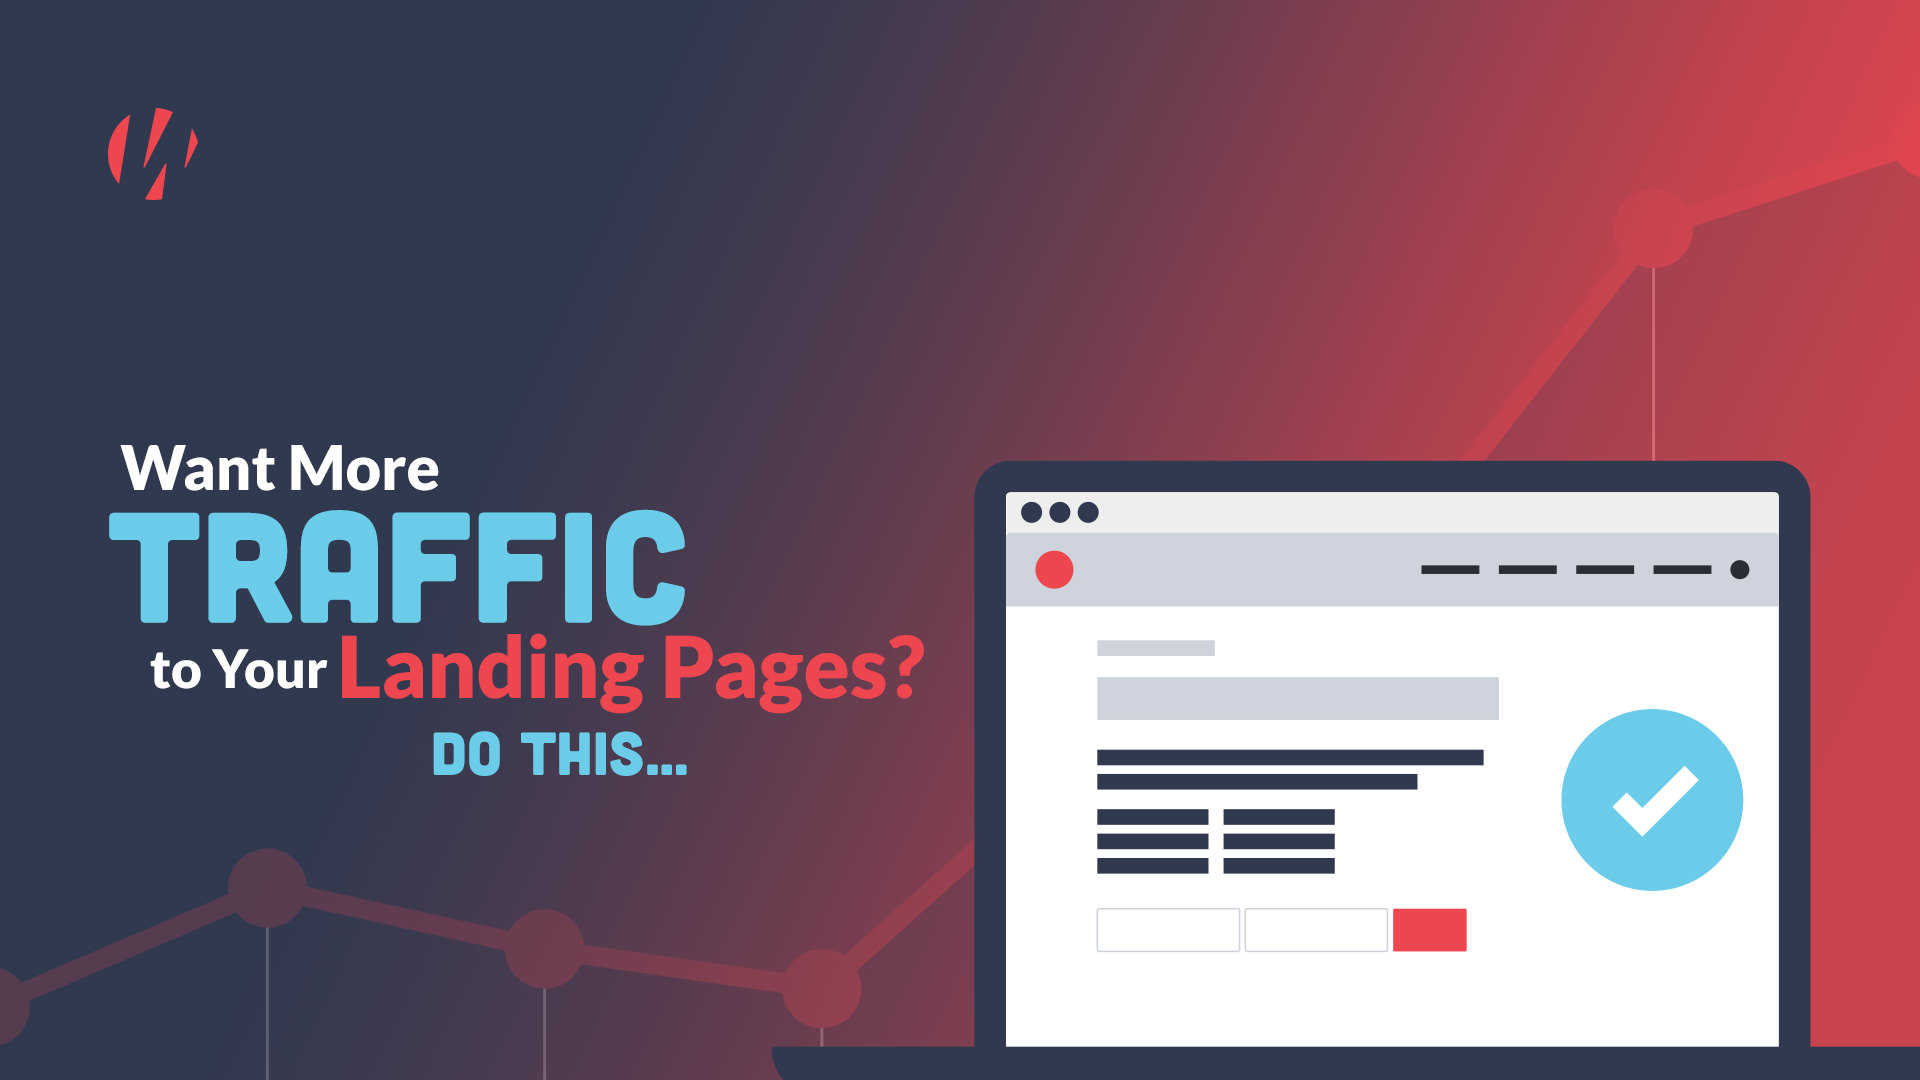 want more traffic to your landing pages? do this...